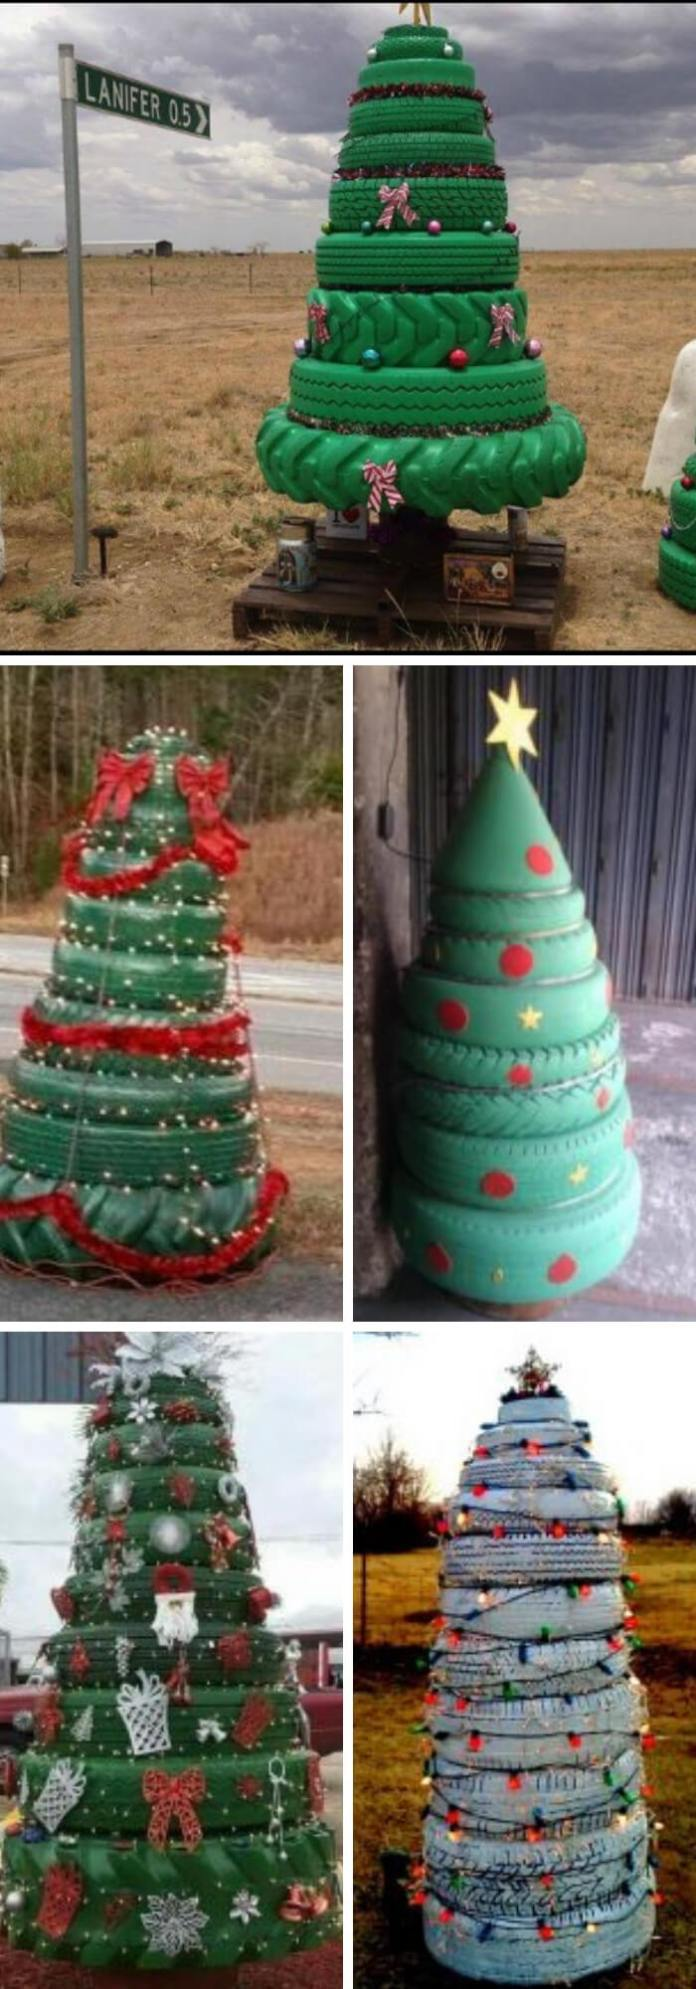 Tire Christmas tree | Best Recycled Tire Christmas Decoration Ideas | FarmFoodFamily.com